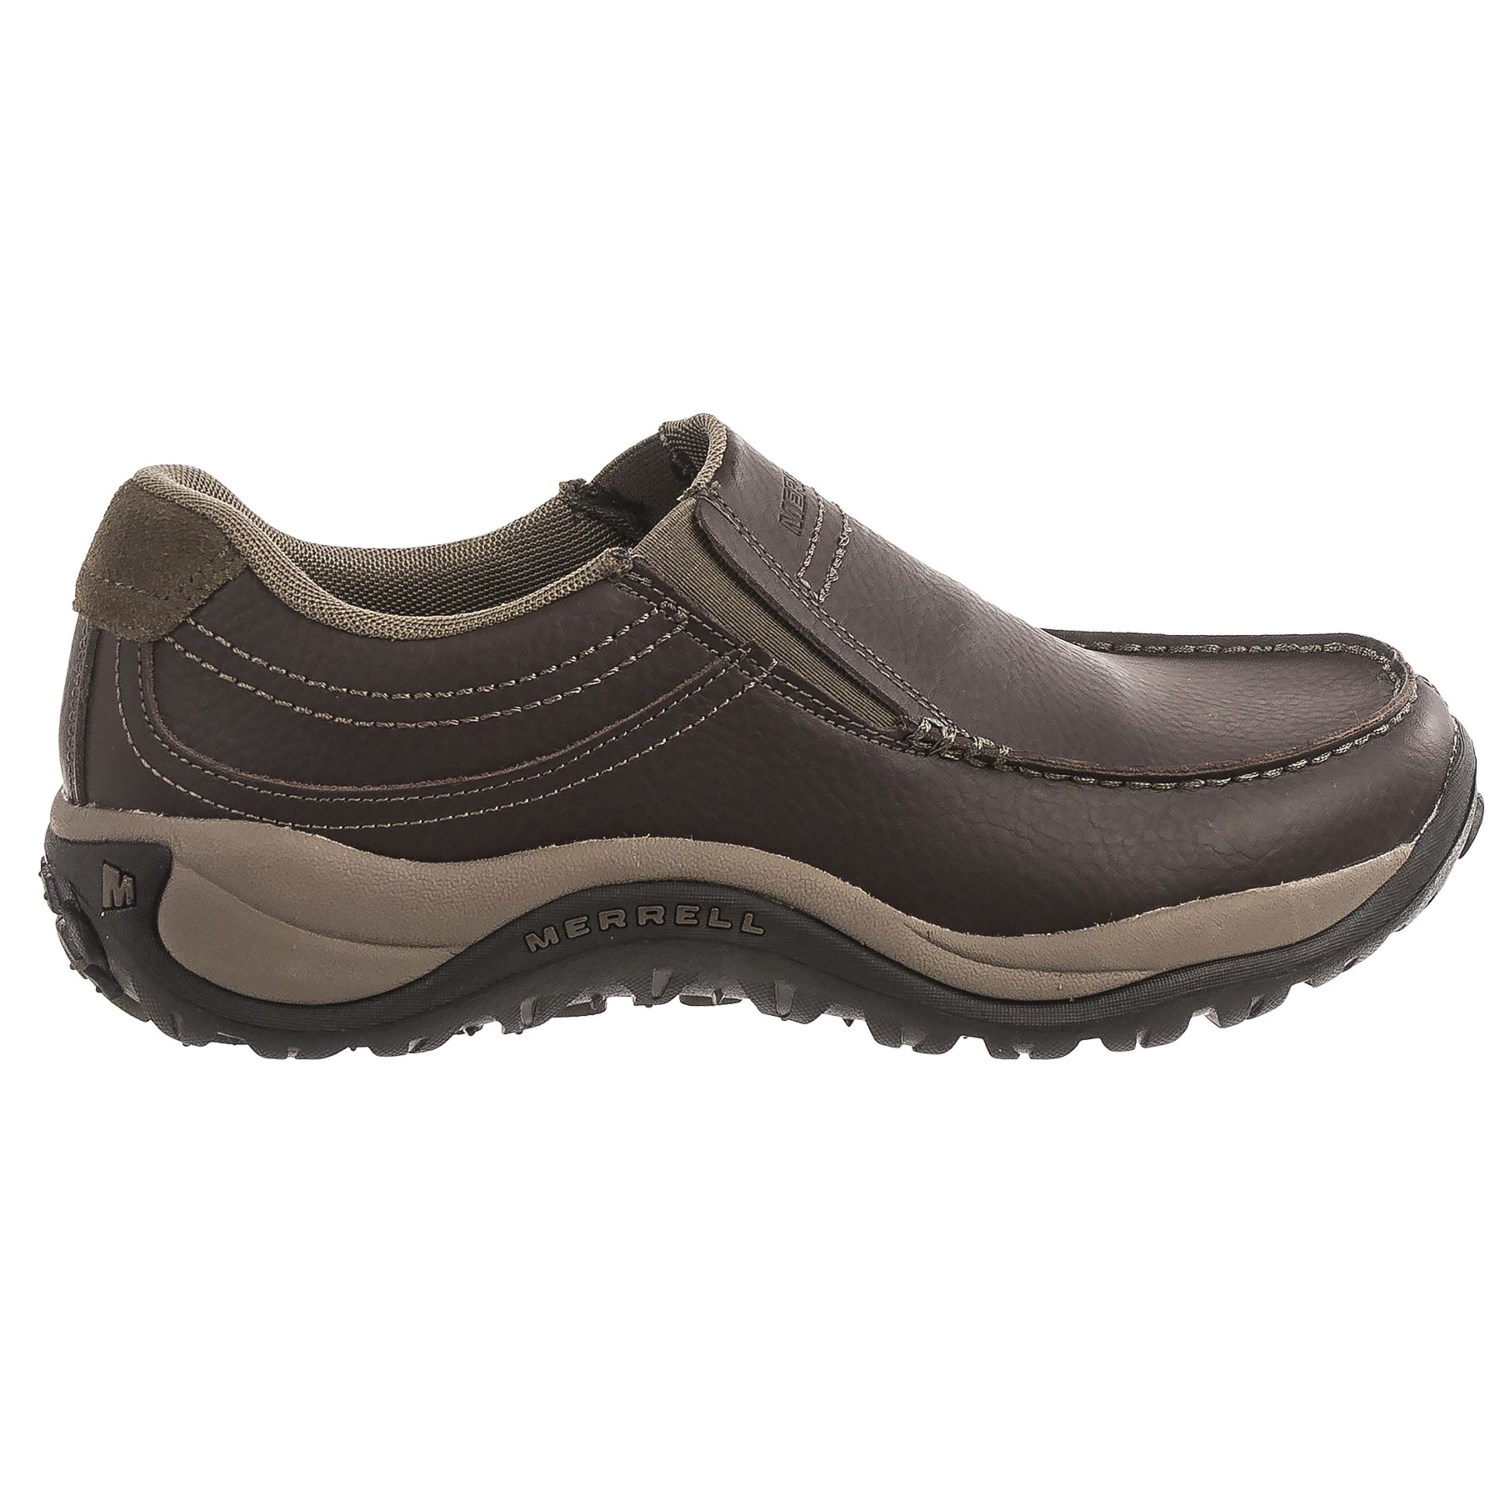 Merrell Shoes Online Store